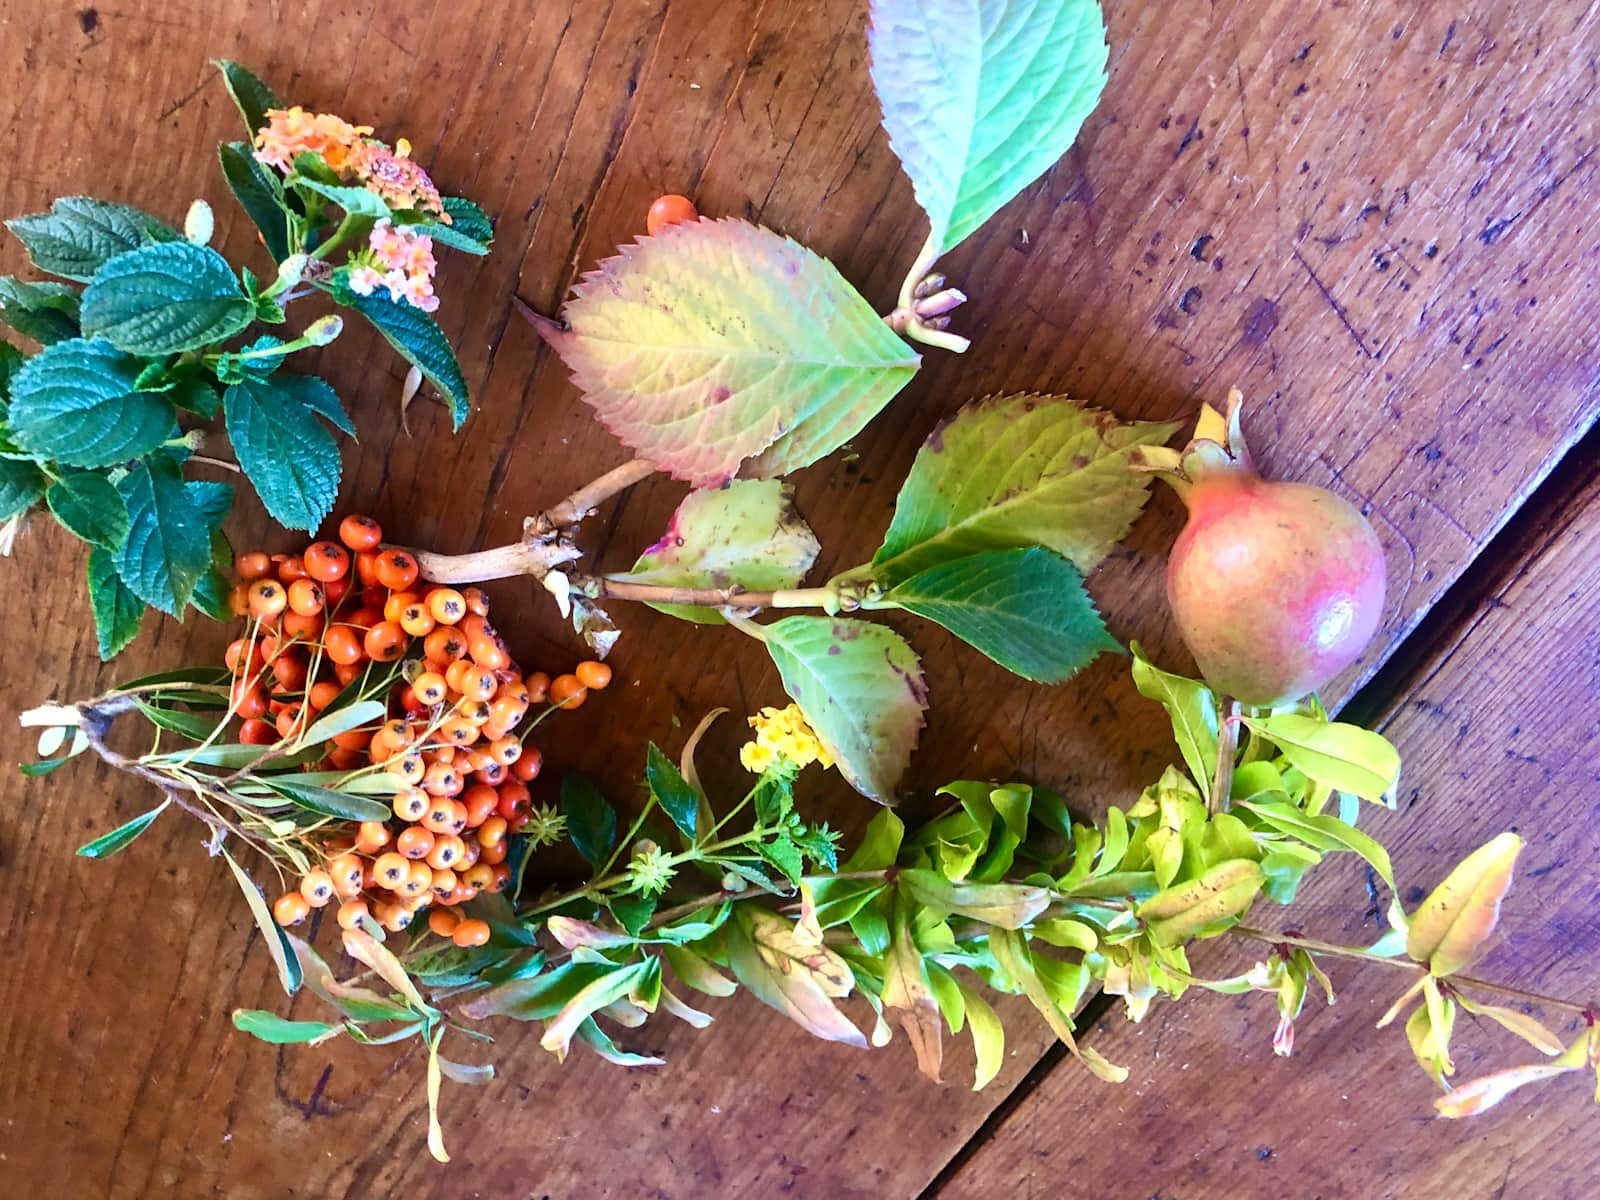 foraged florals on cindy hattersley's blog